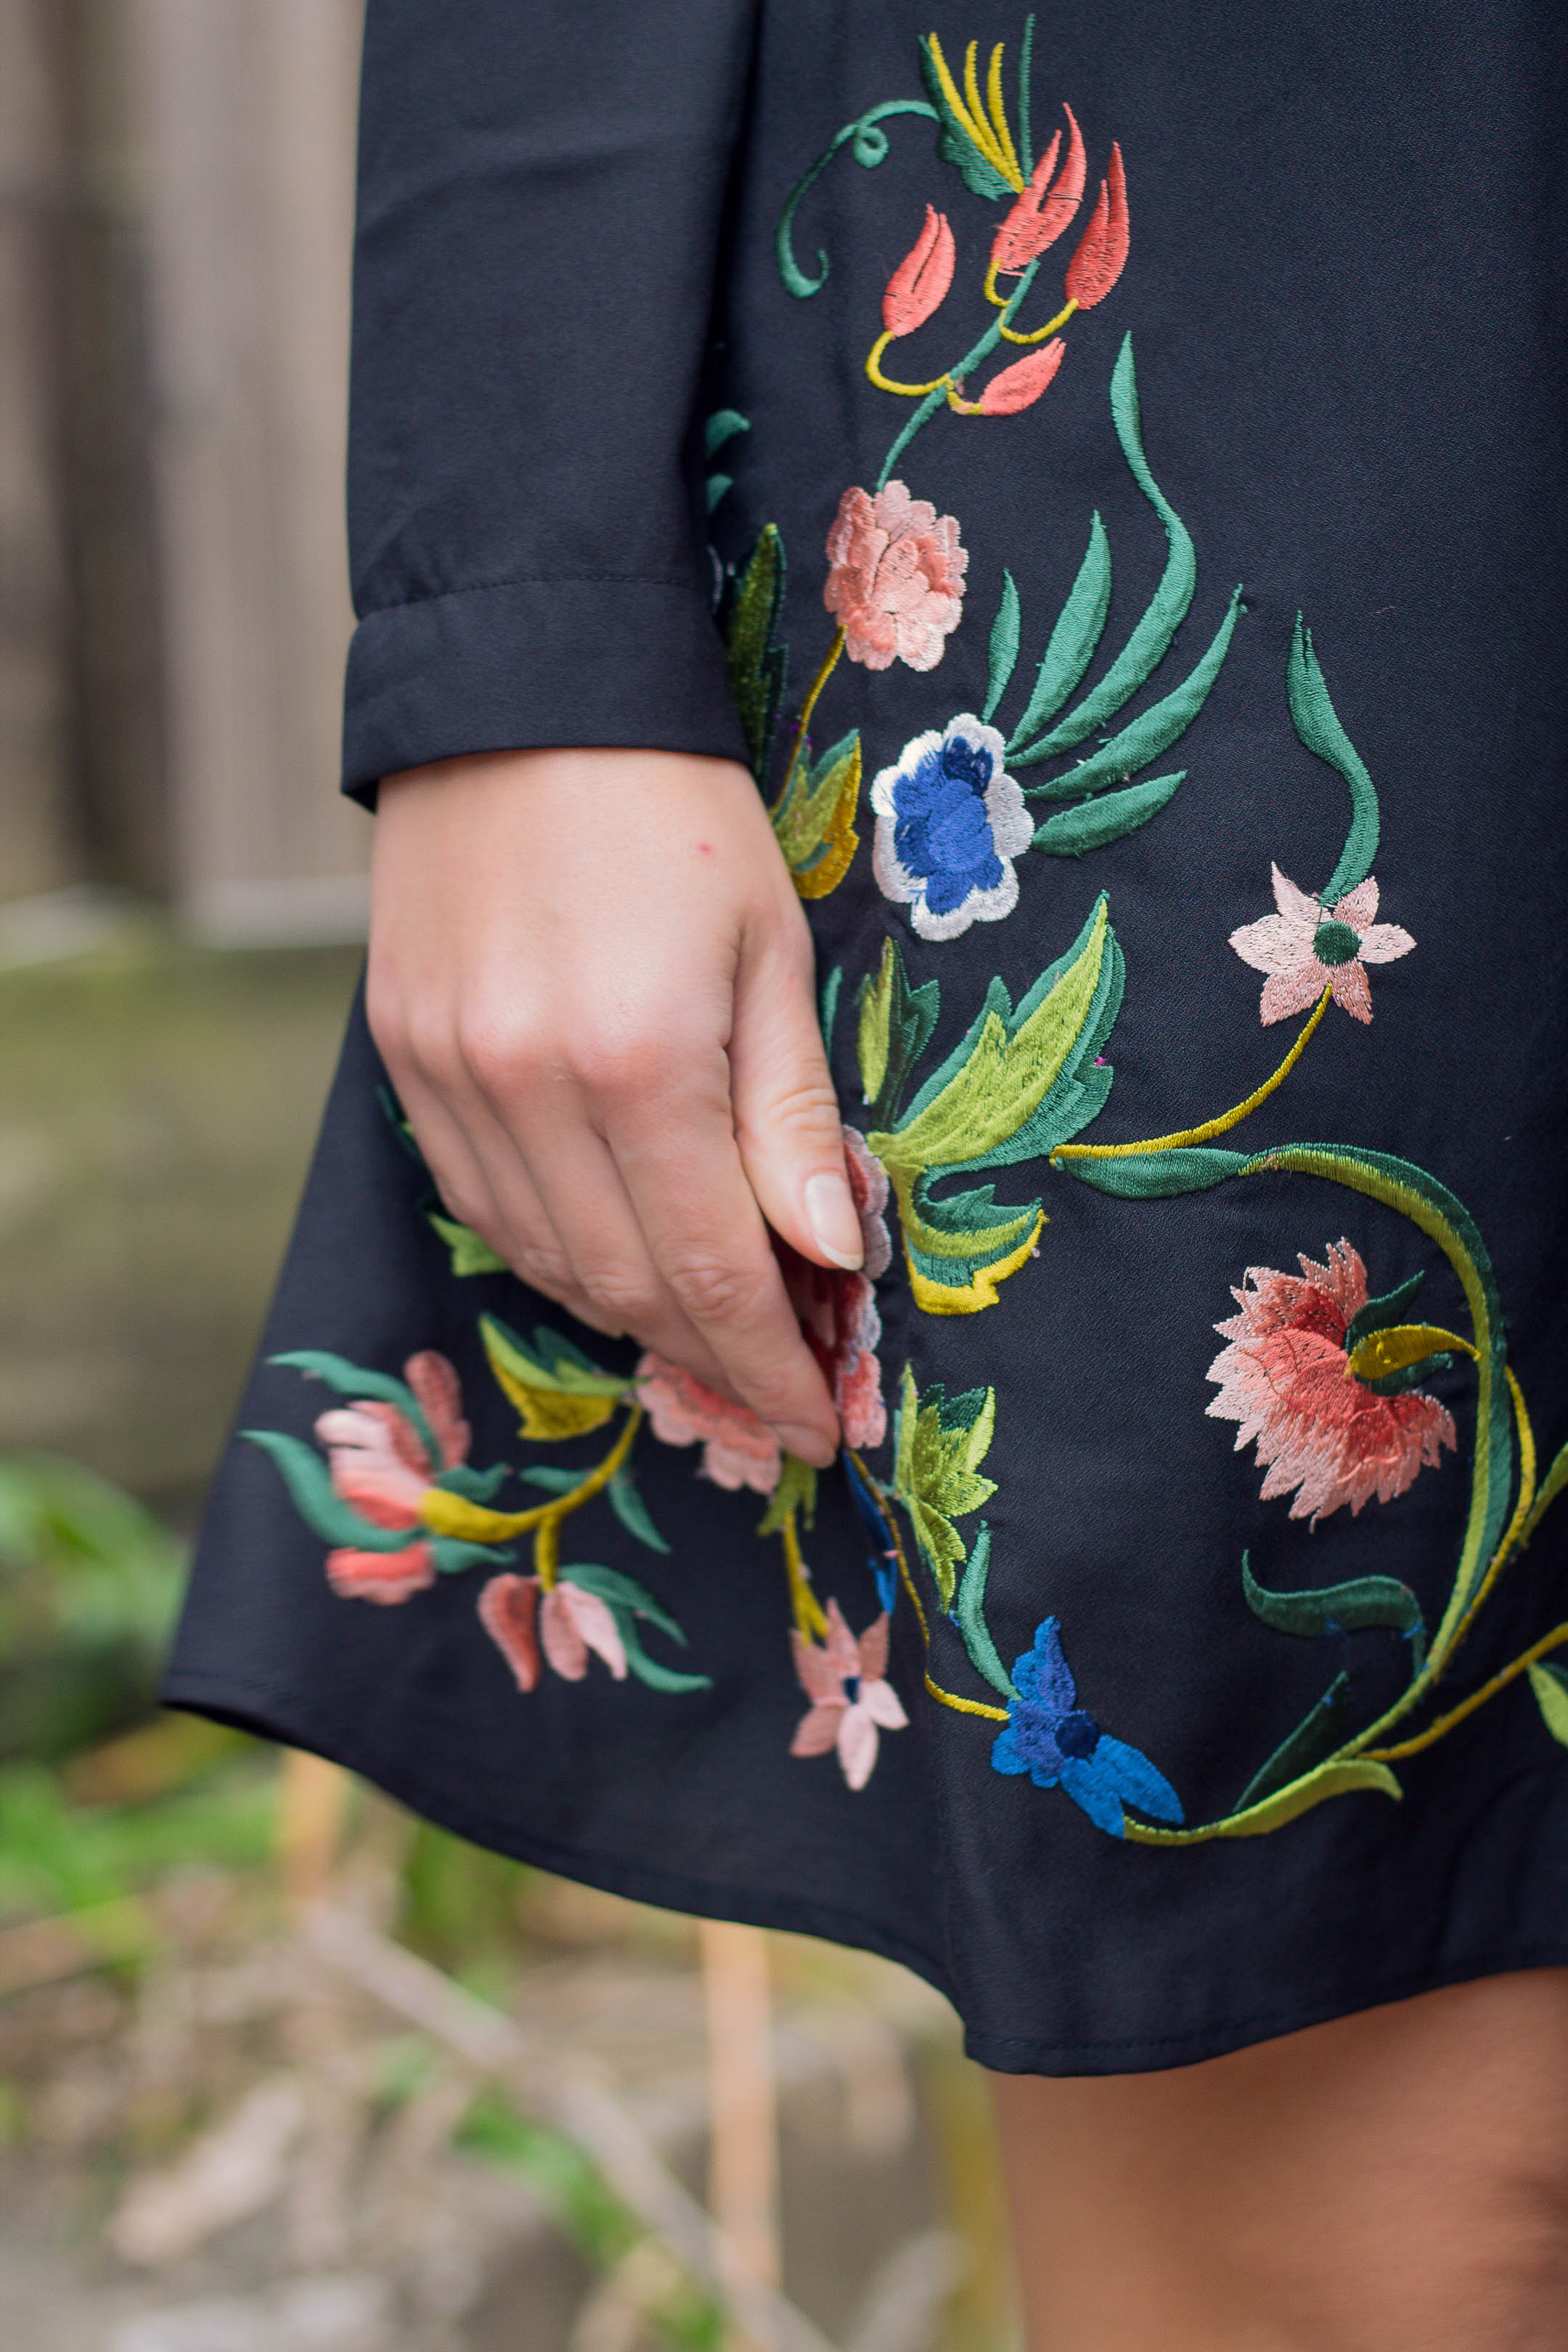 Colorful embroidery on a black dress